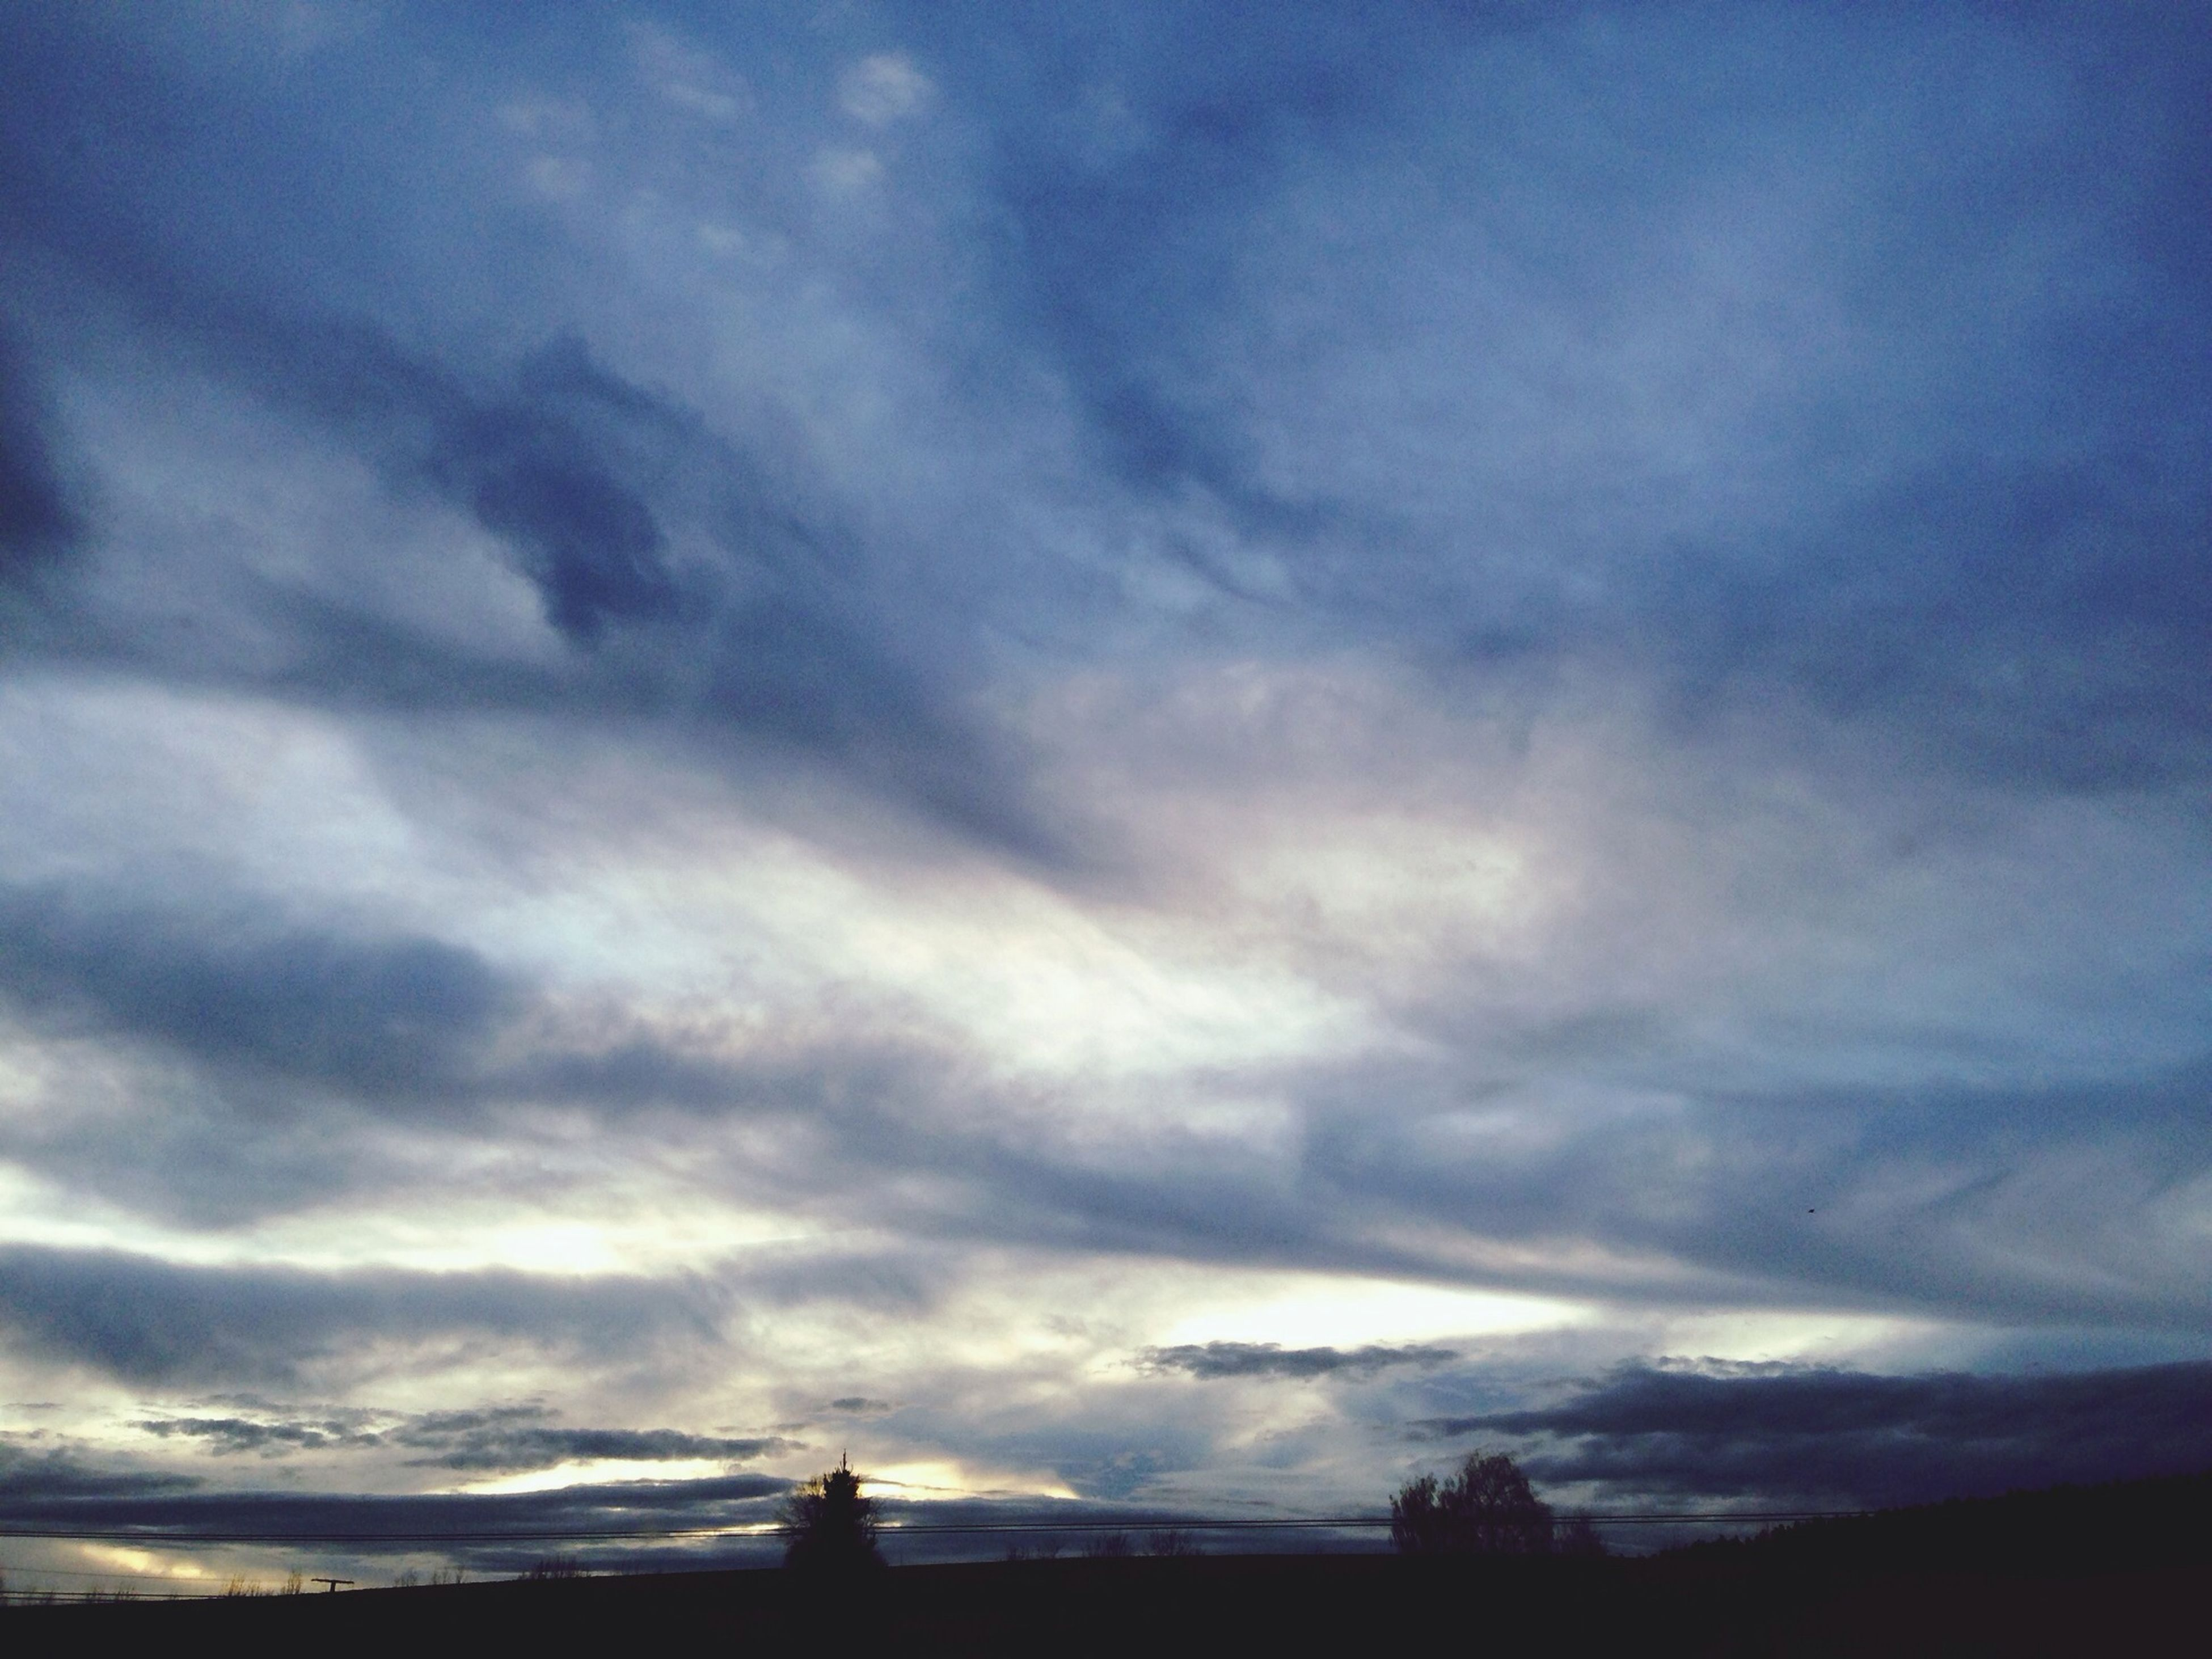 sky, silhouette, cloud - sky, low angle view, cloudy, built structure, architecture, cloud, building exterior, dusk, sunset, weather, beauty in nature, nature, scenics, tranquility, overcast, outdoors, dramatic sky, cloudscape